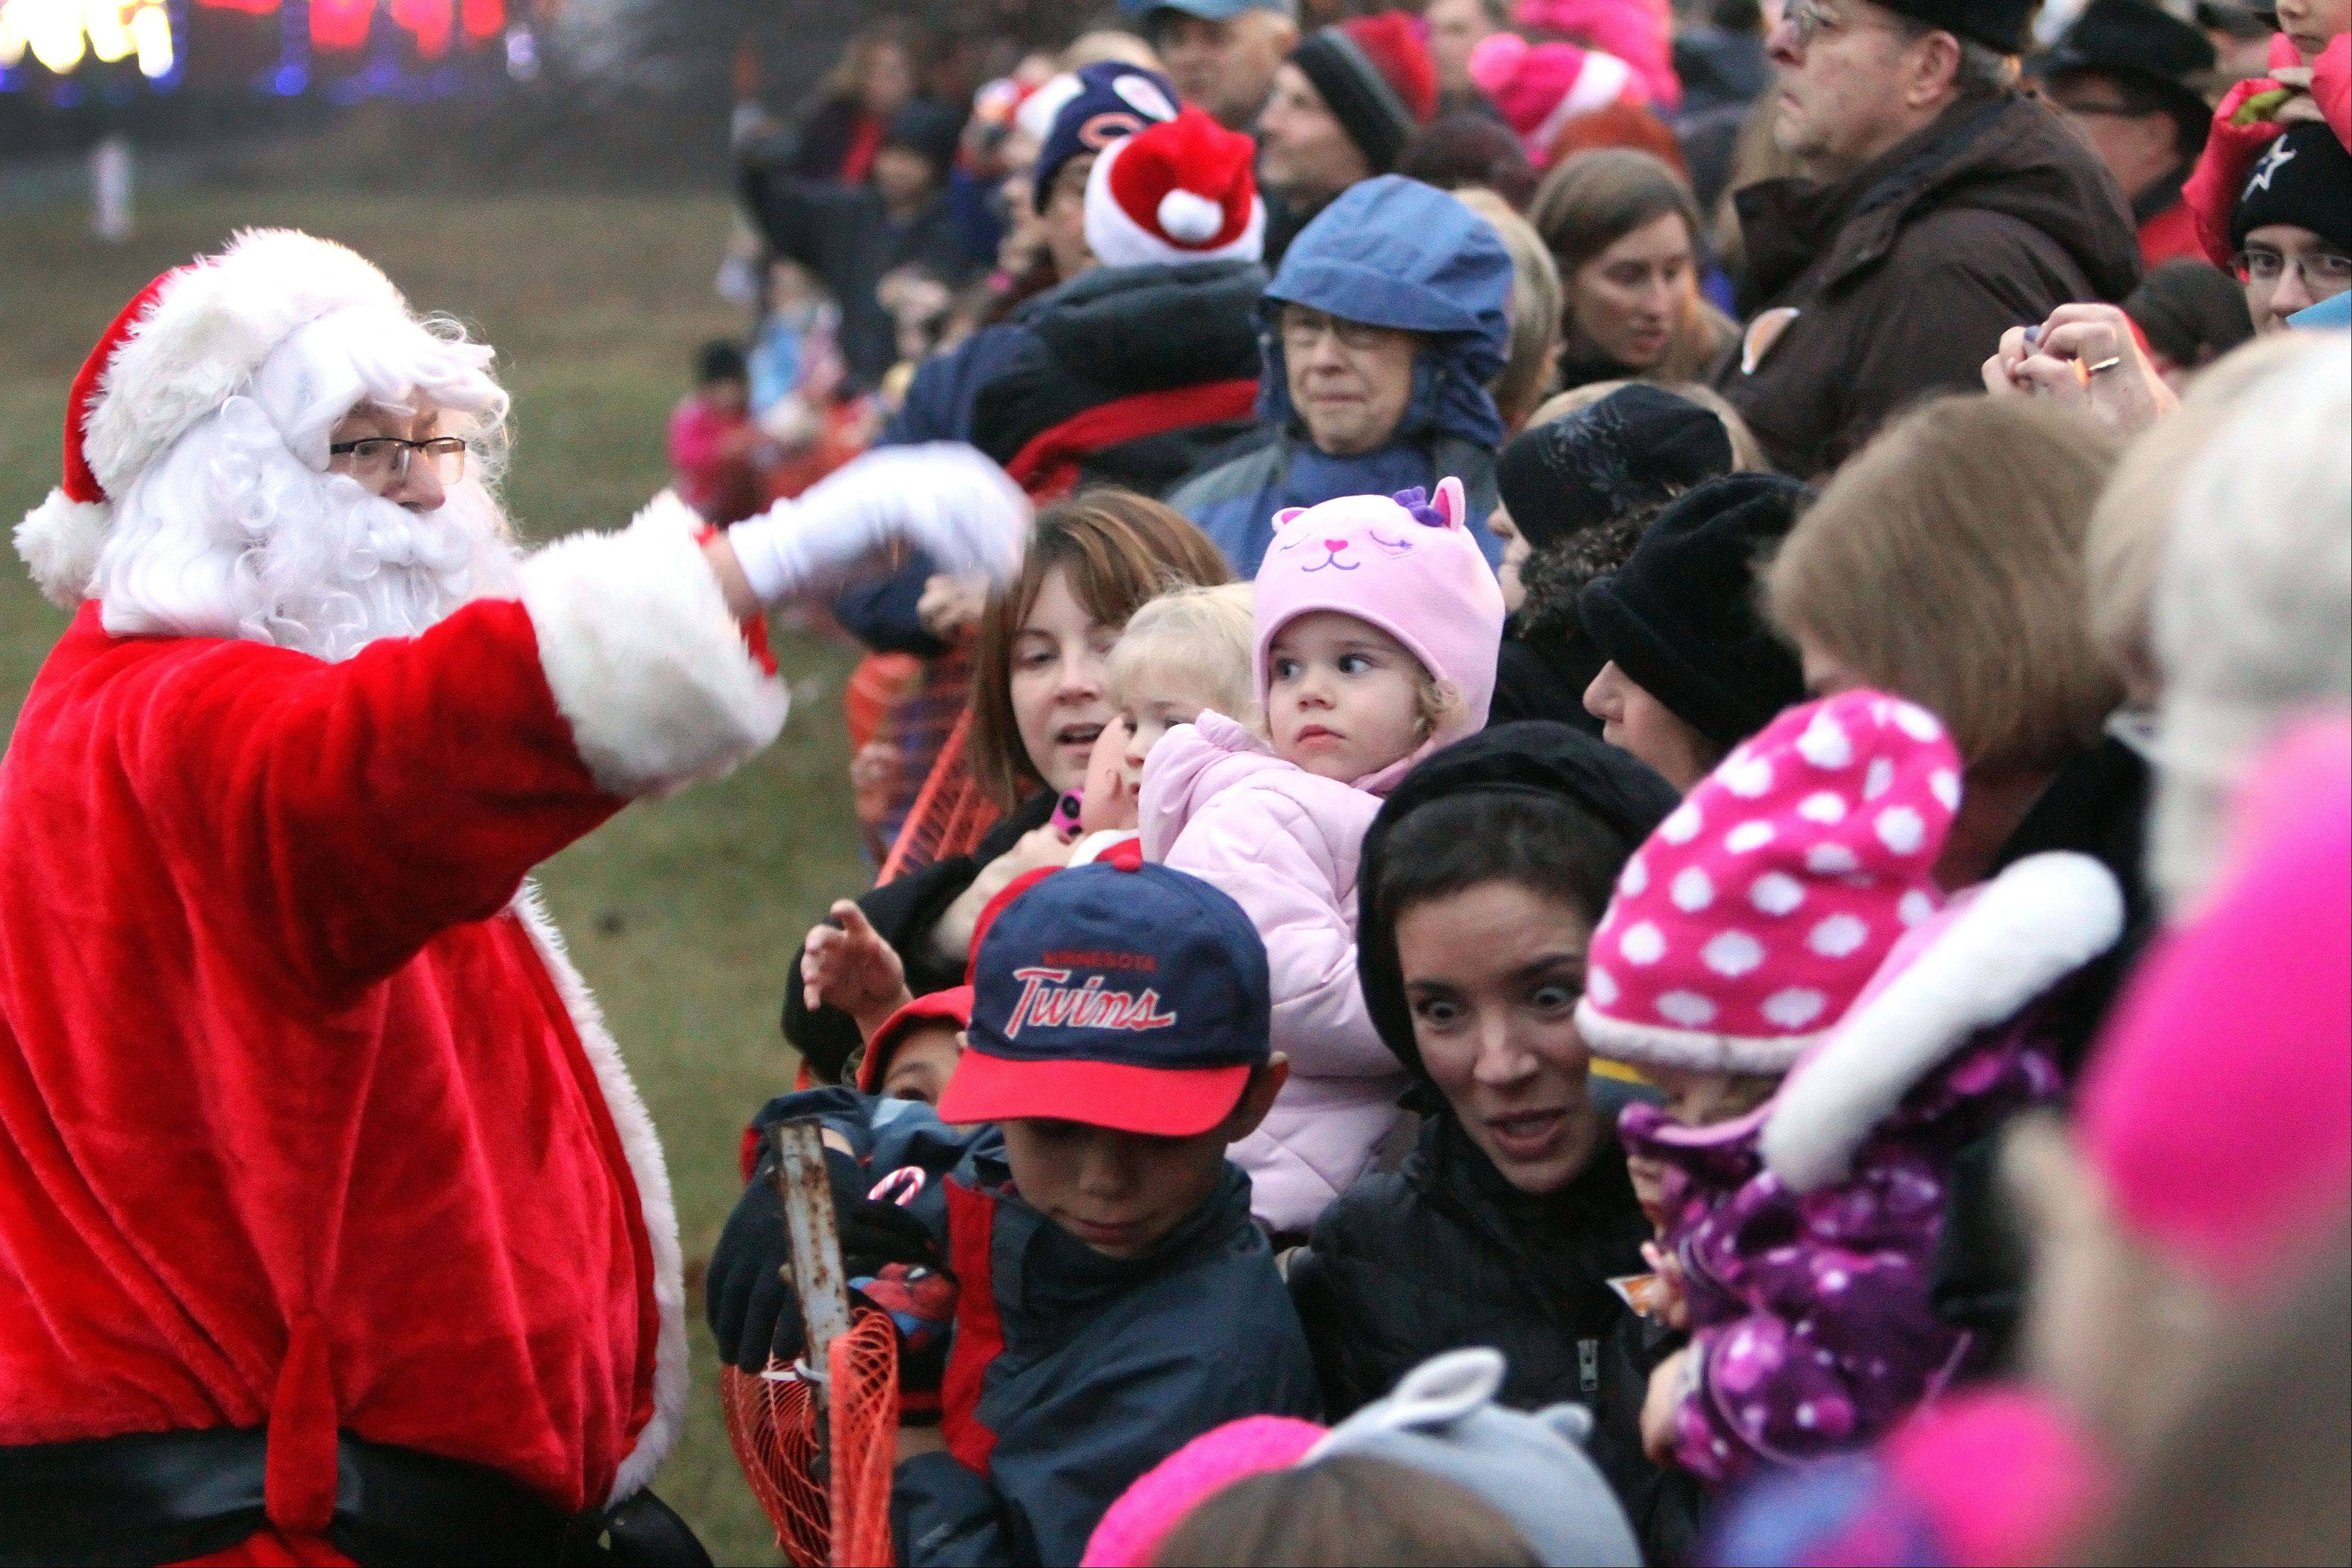 Santa handed out candy canes to children as the 15th annual Canadian Pacific Holiday Train stopped on Depot Road in Gurnee on Wednesday. Food and funds were collected to benefit the Northern Illinois Food Bank.